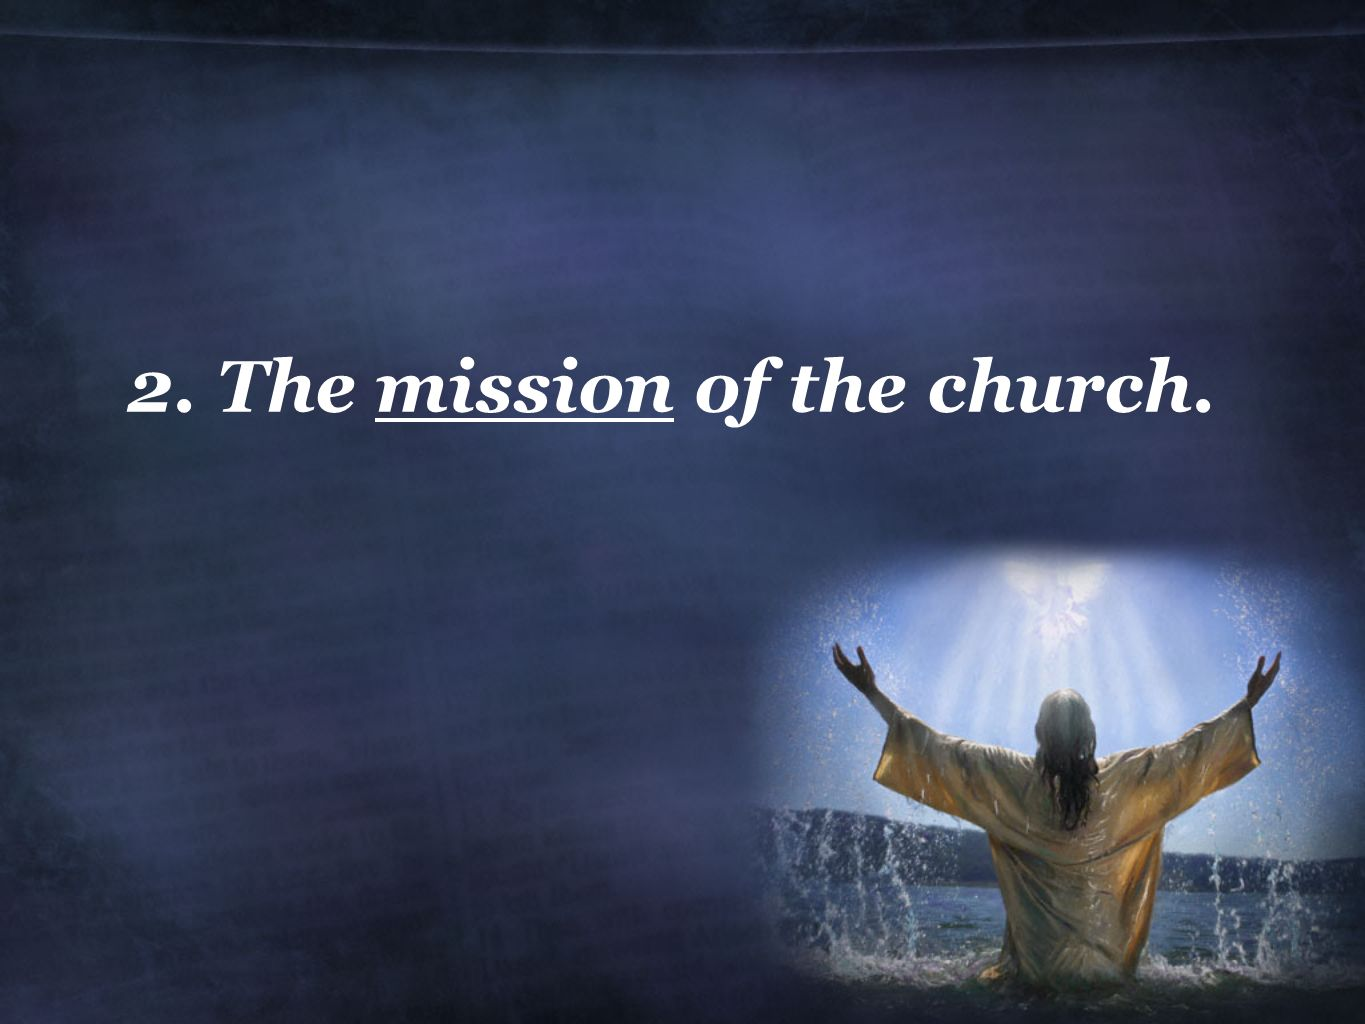 2. The mission of the church.